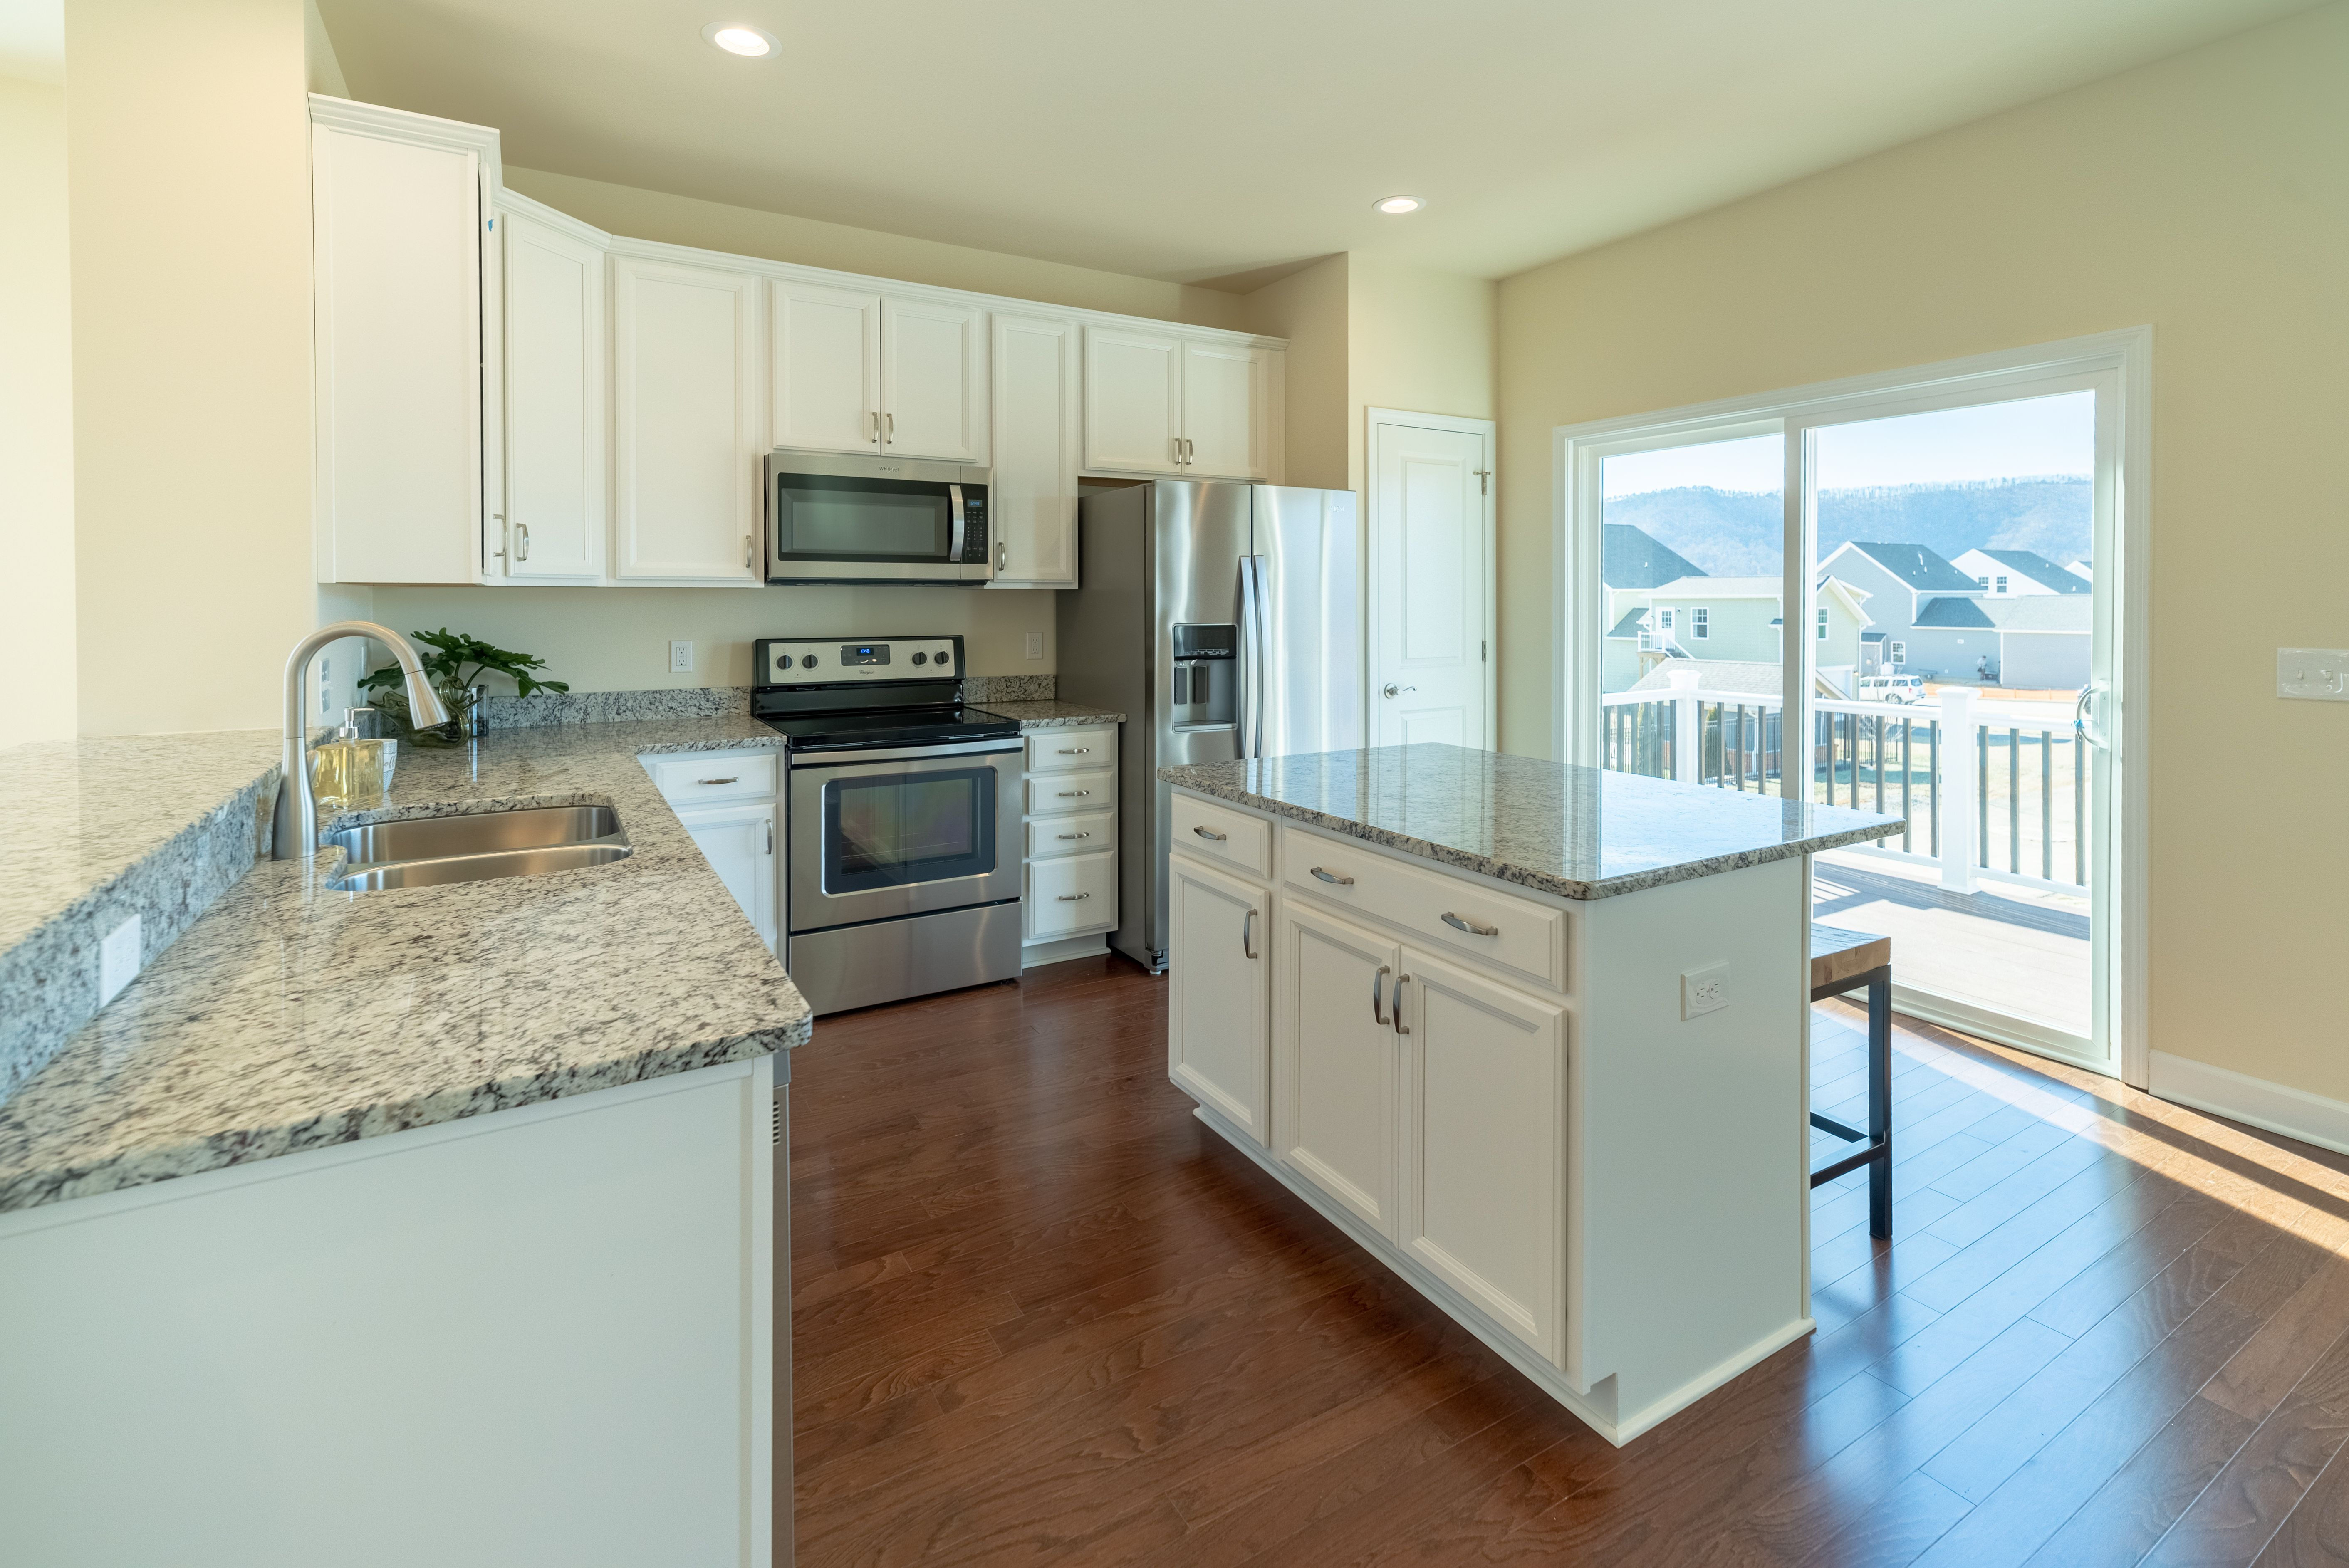 Kitchen featured in The Stafford By Stateson Homes in Roanoke, VA